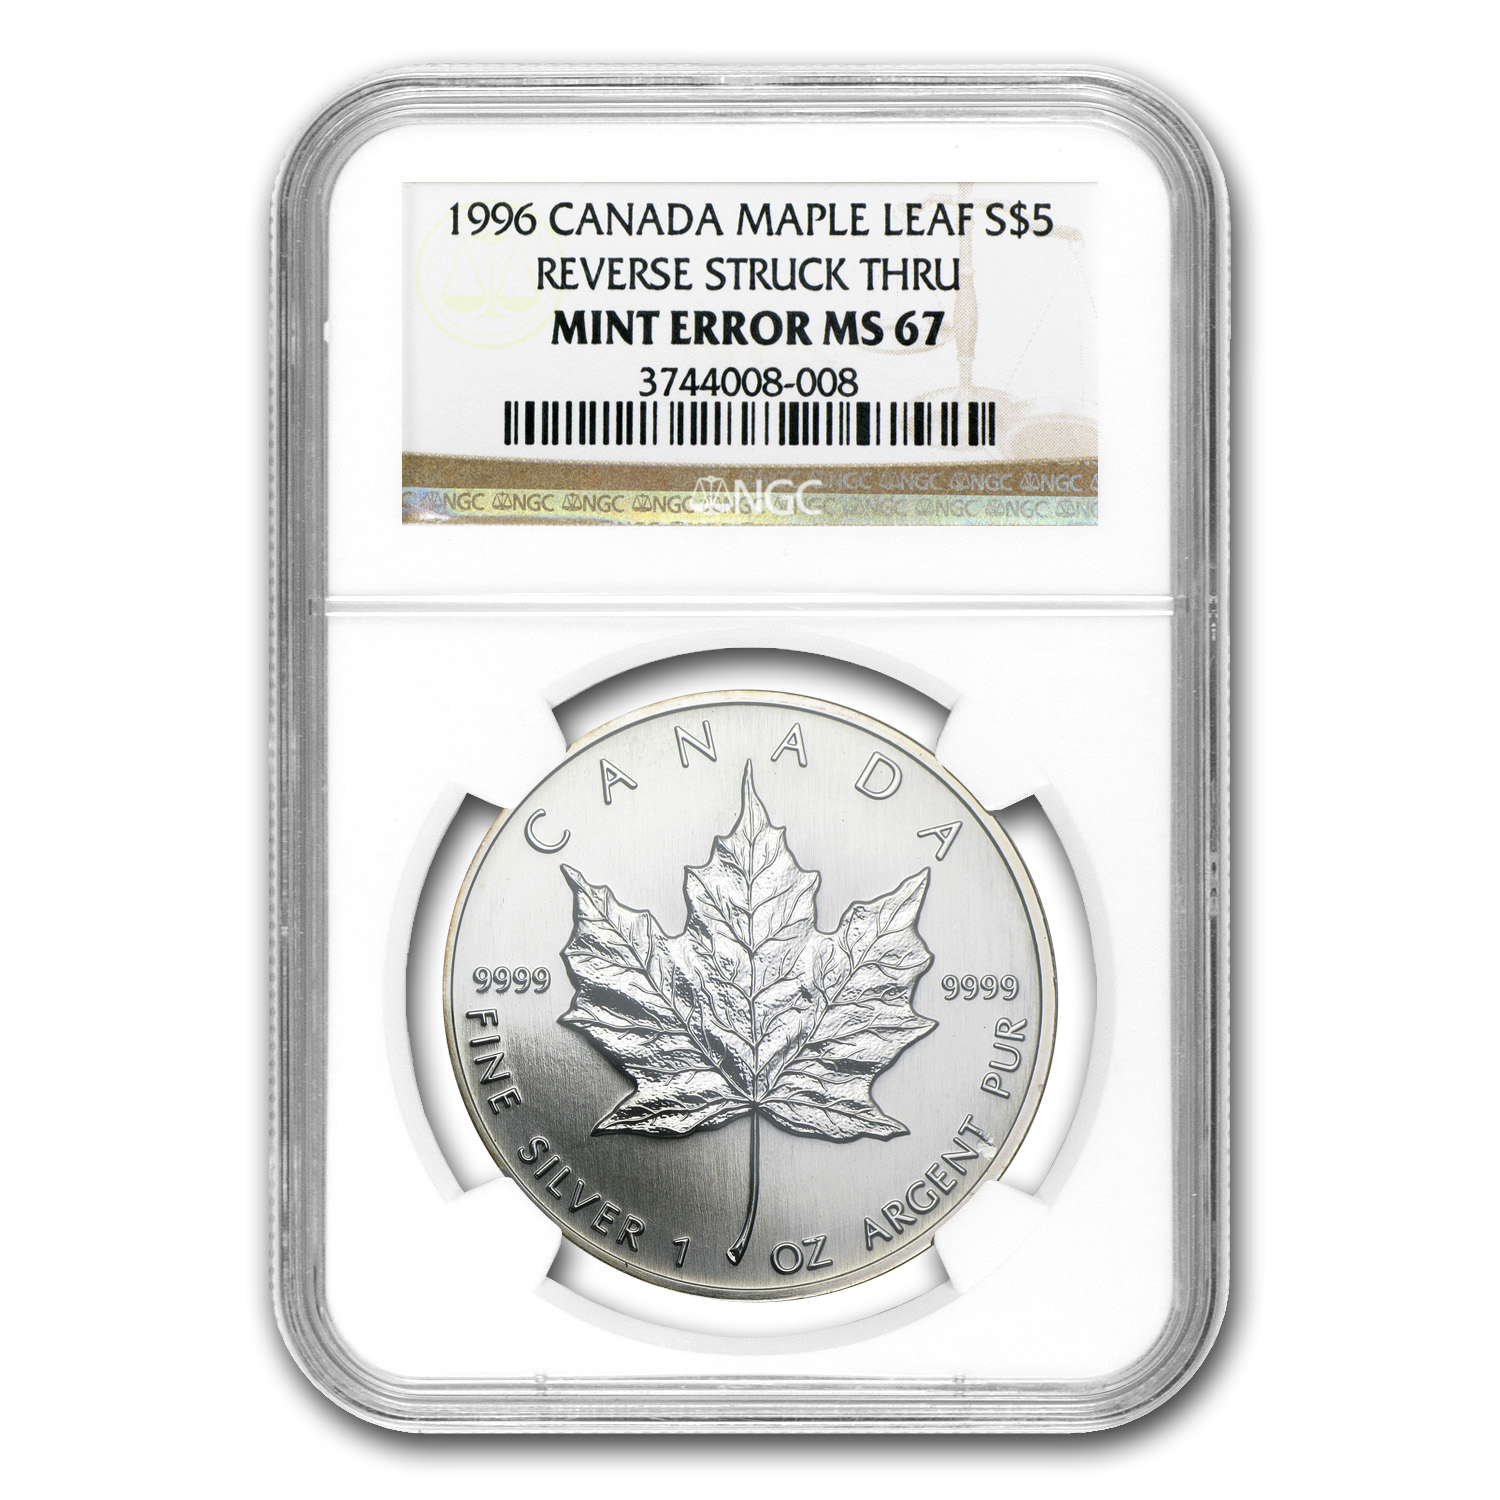 1996 1 oz Silver Can. Maple Leaf Rev. Struck Mint Error MS-67 NGC